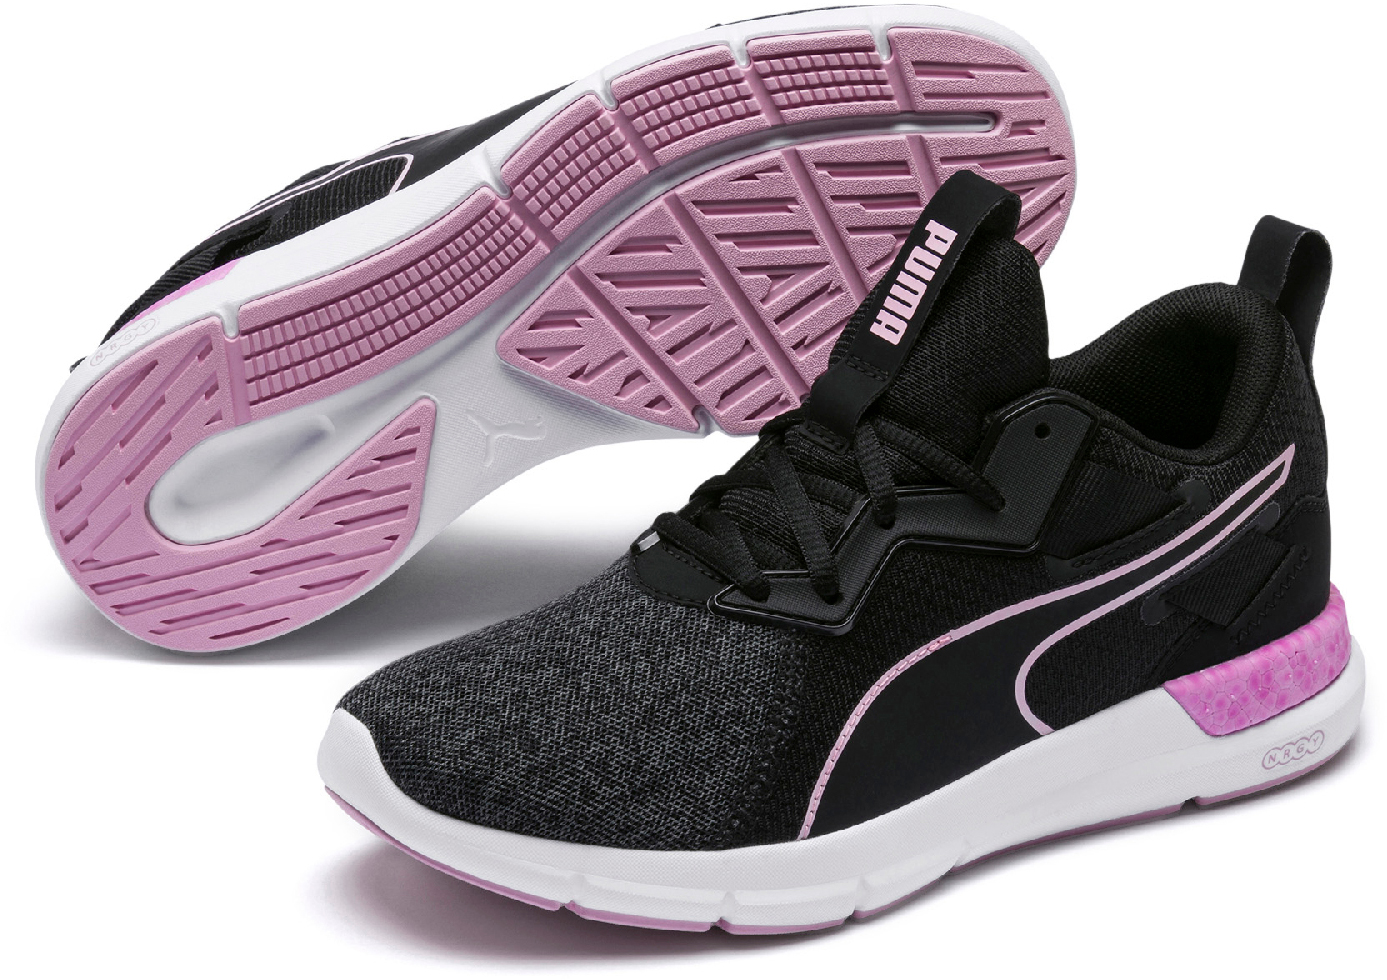 Train ShoesPuma Nrgy Futuro Women's Dynamo Fitness trxBdCshQ